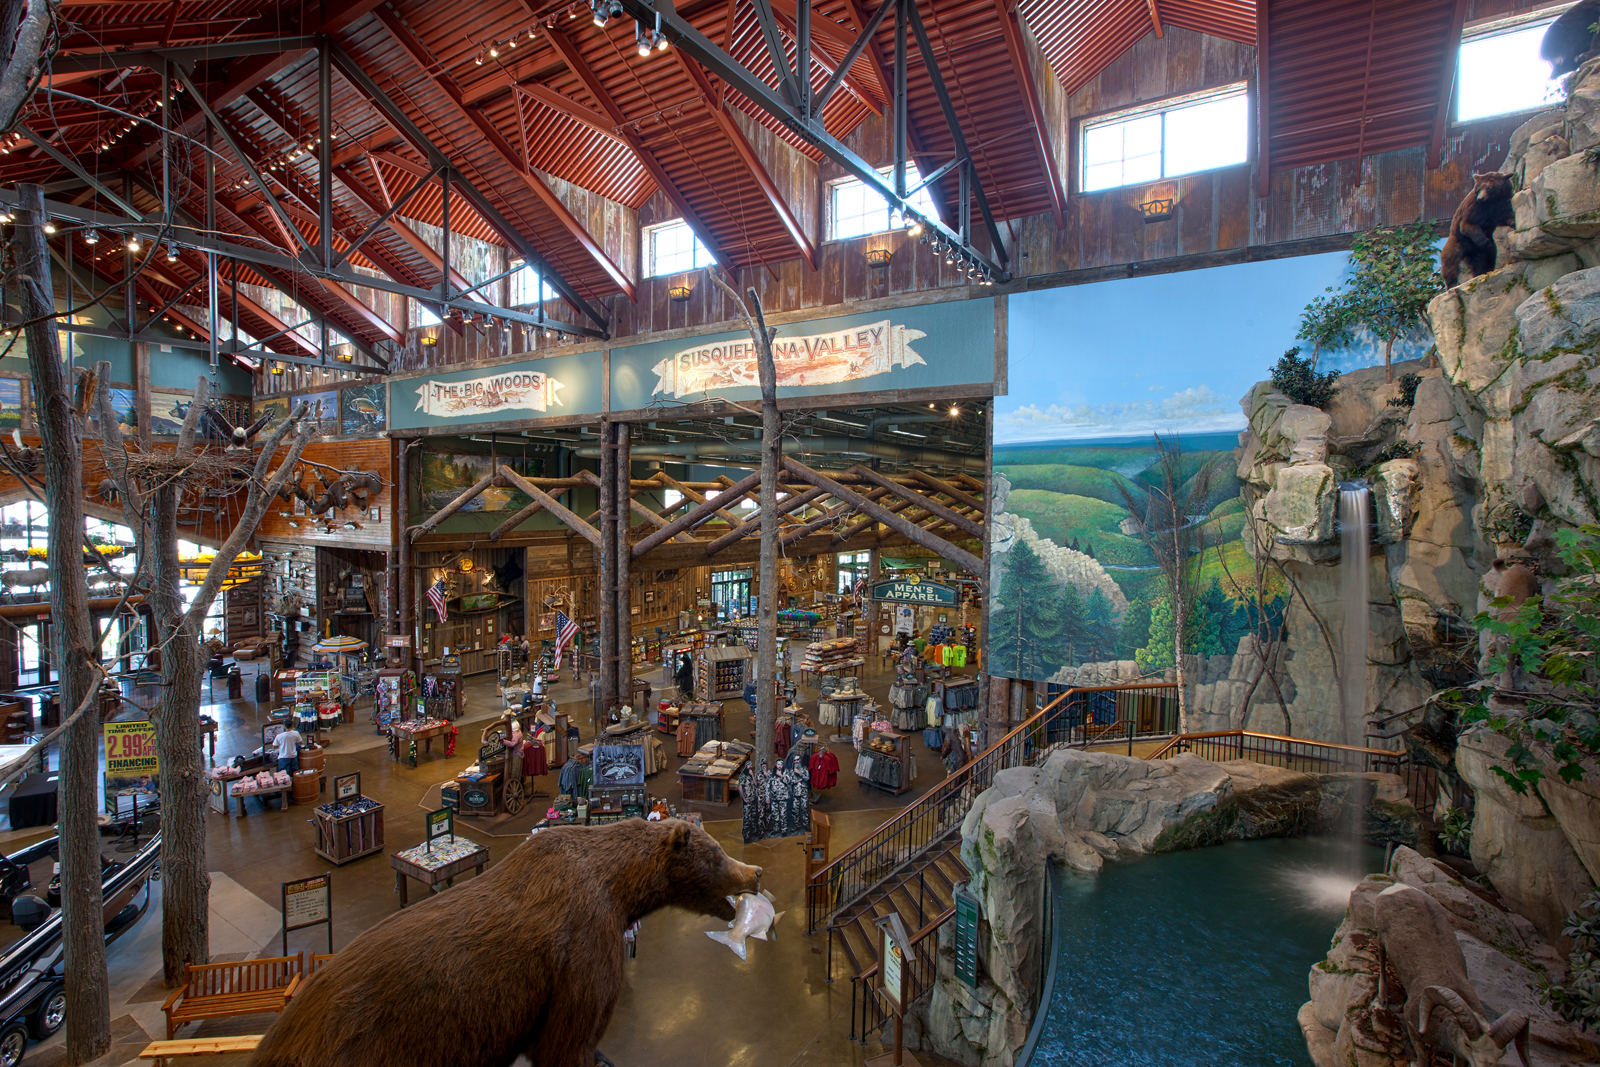 bass pro shops in Washington, PA | Reviews - Yellowbook